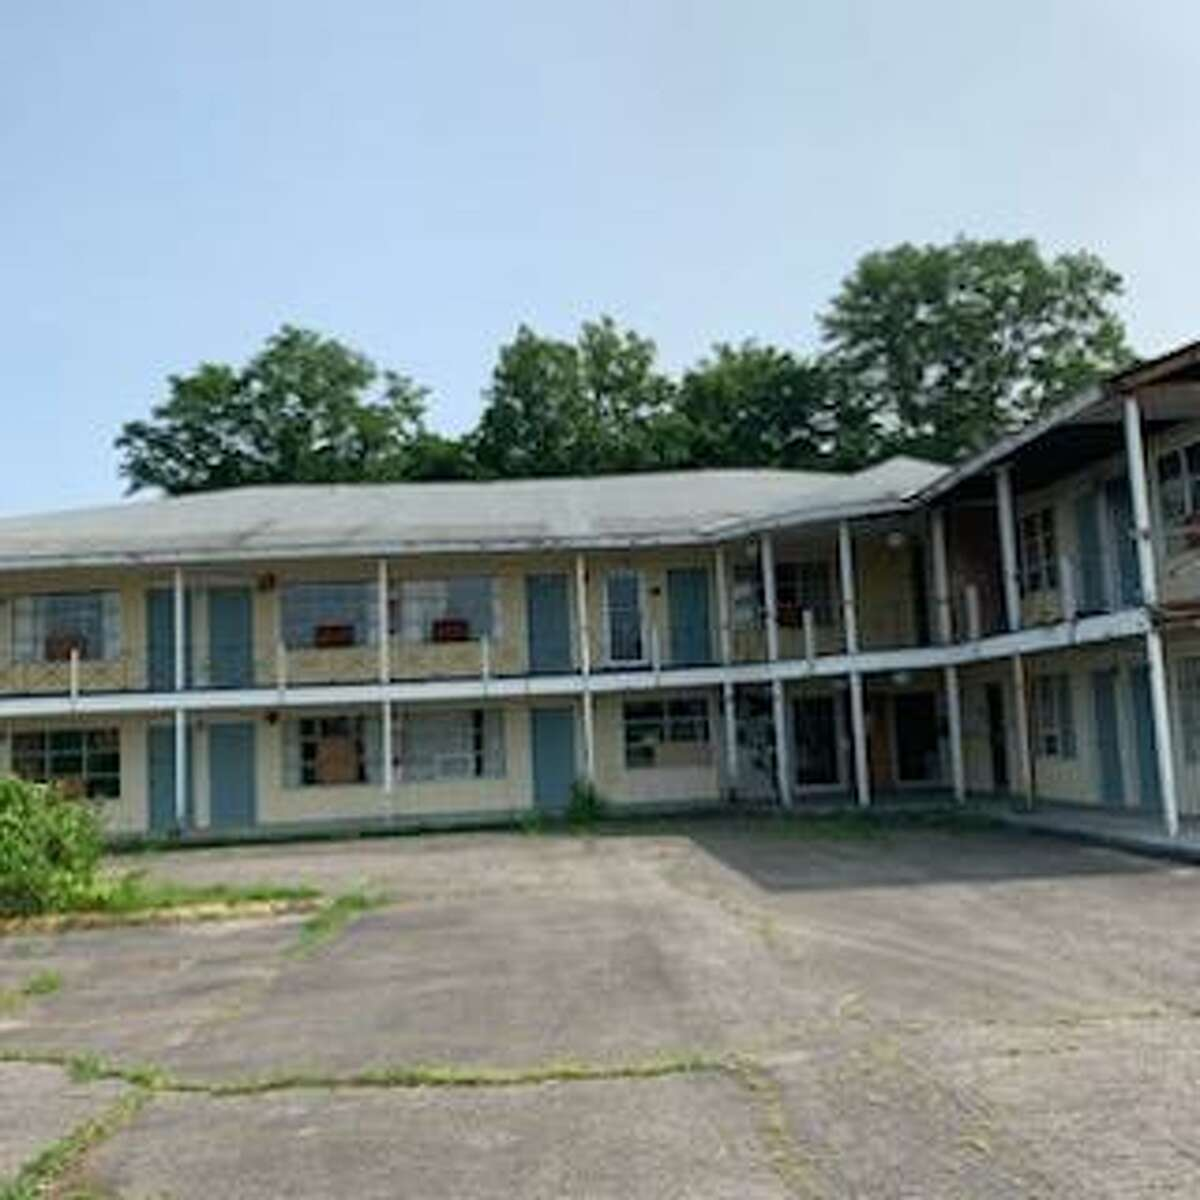 The former Governors Motor Inn will be redeveloped into a self-storage facility.